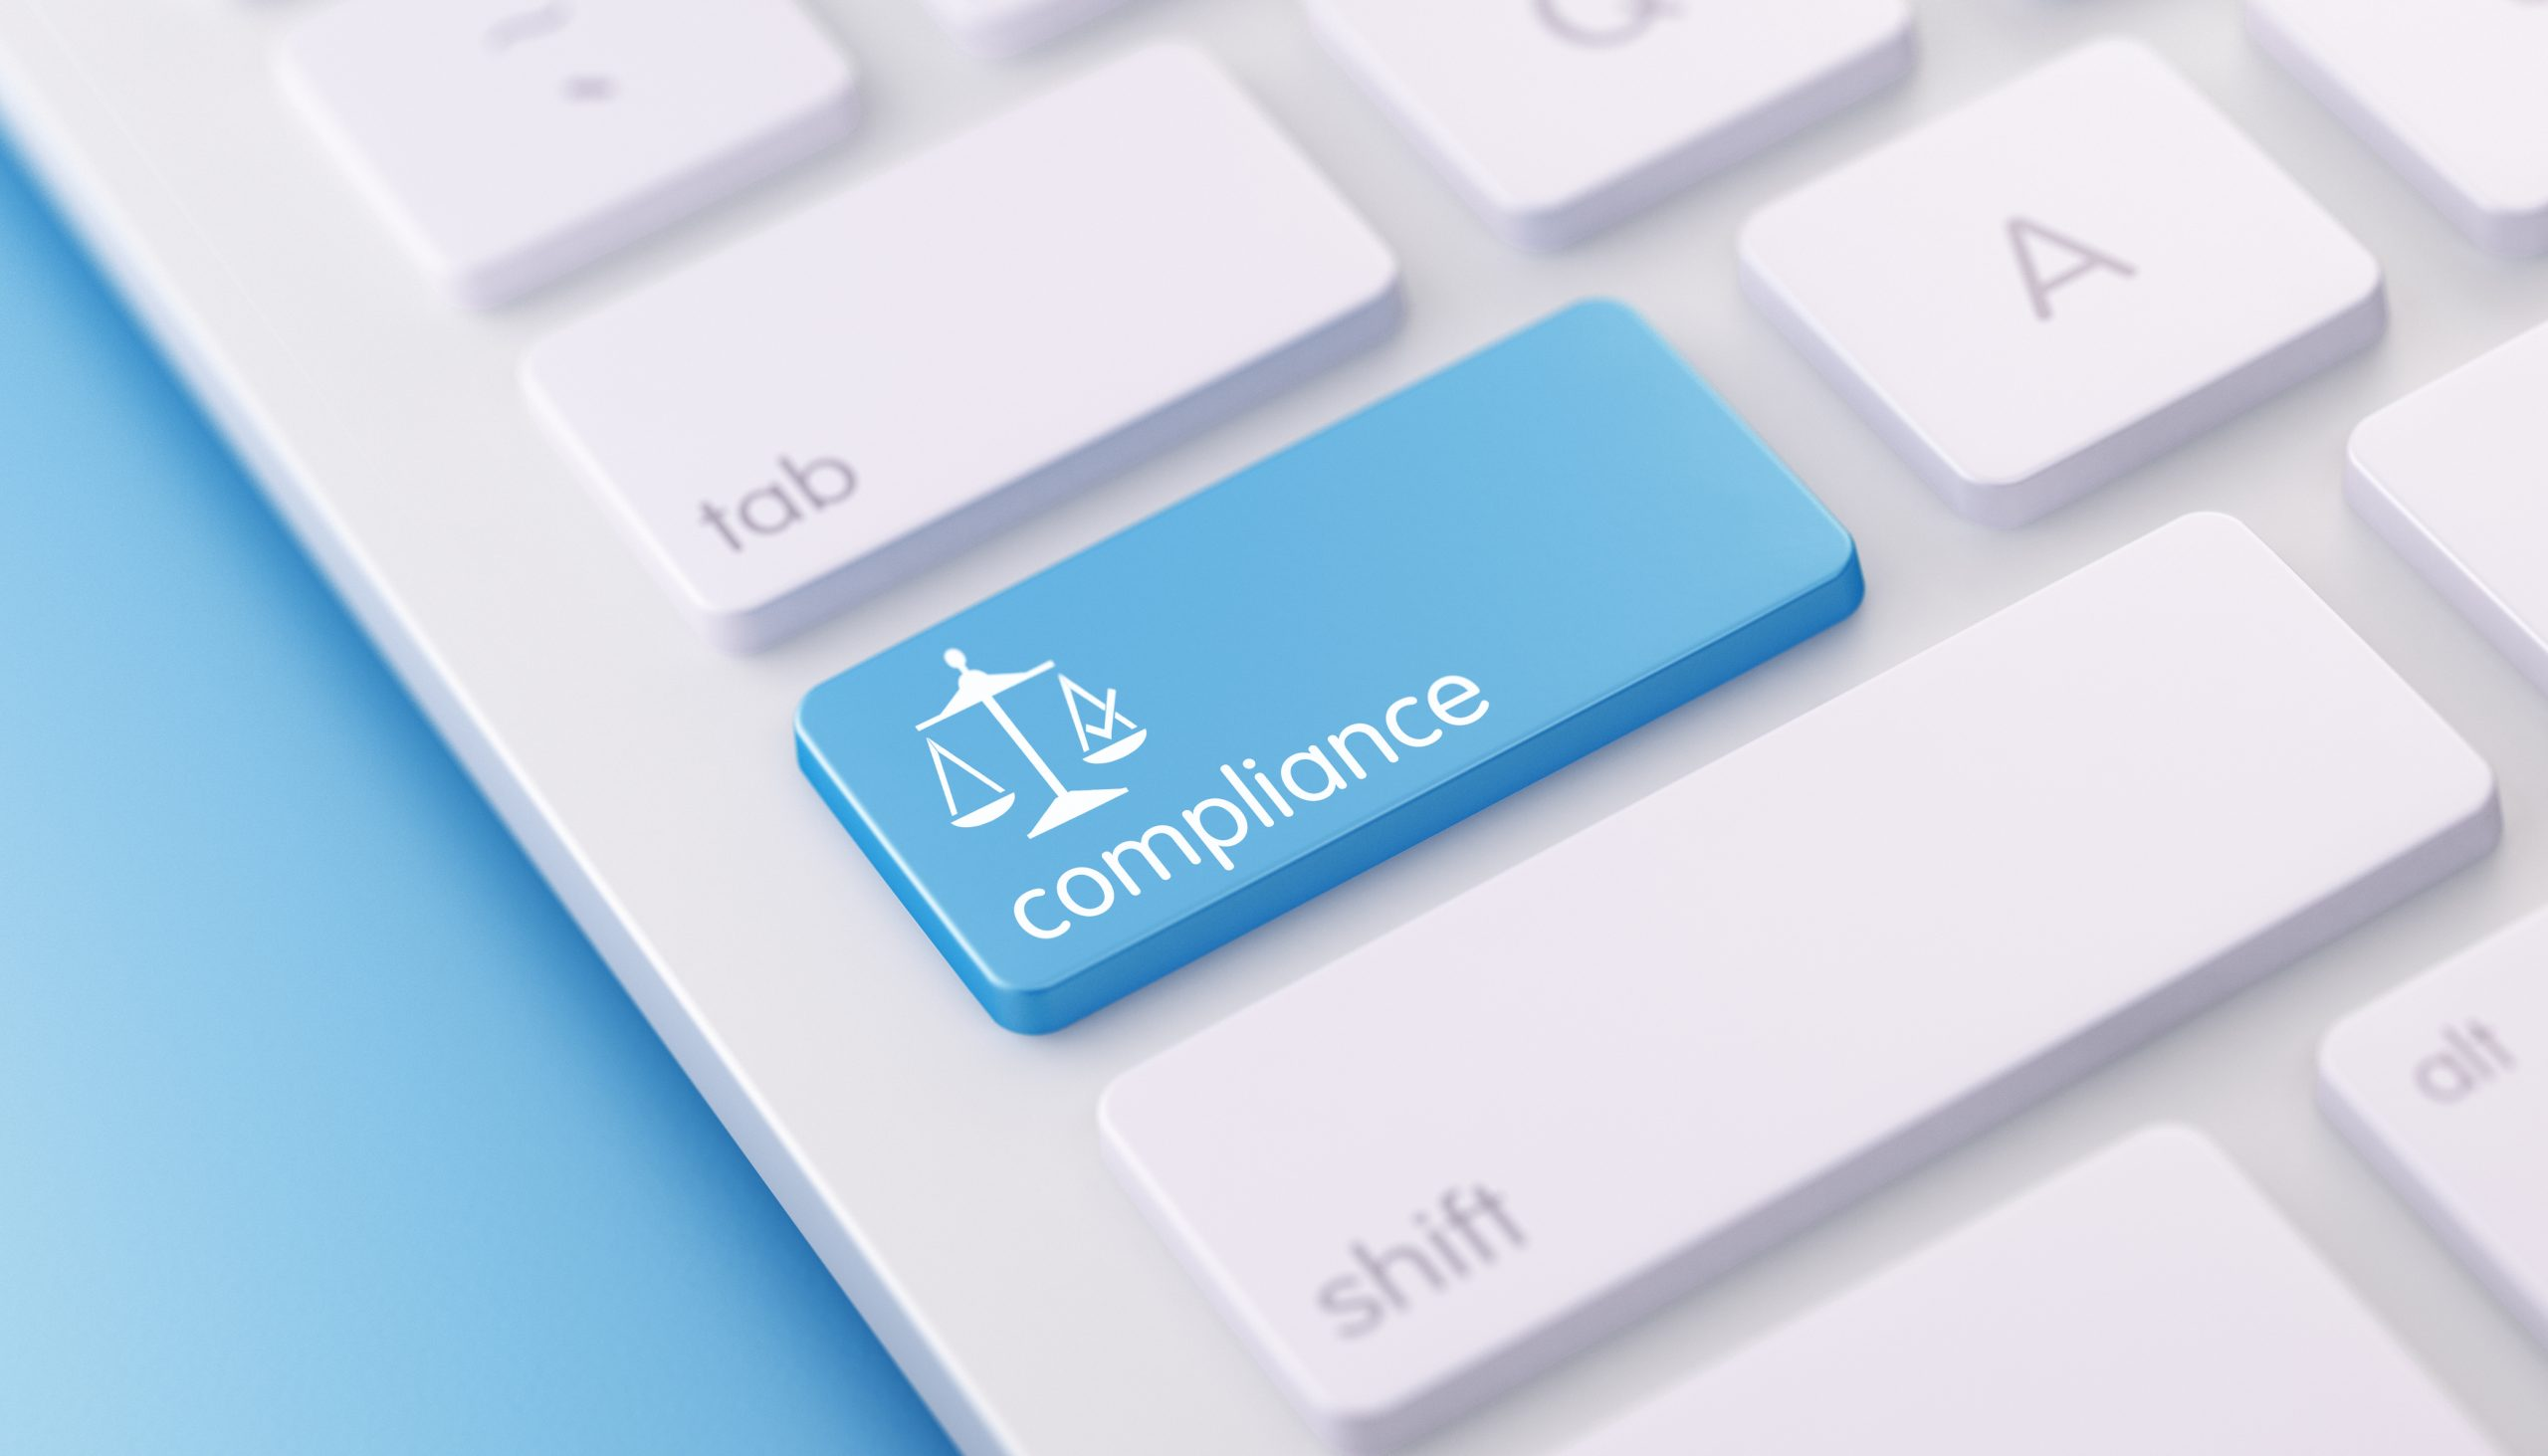 Close-up of keyboard with a Compliance button, illustrating Soc 2 compliance